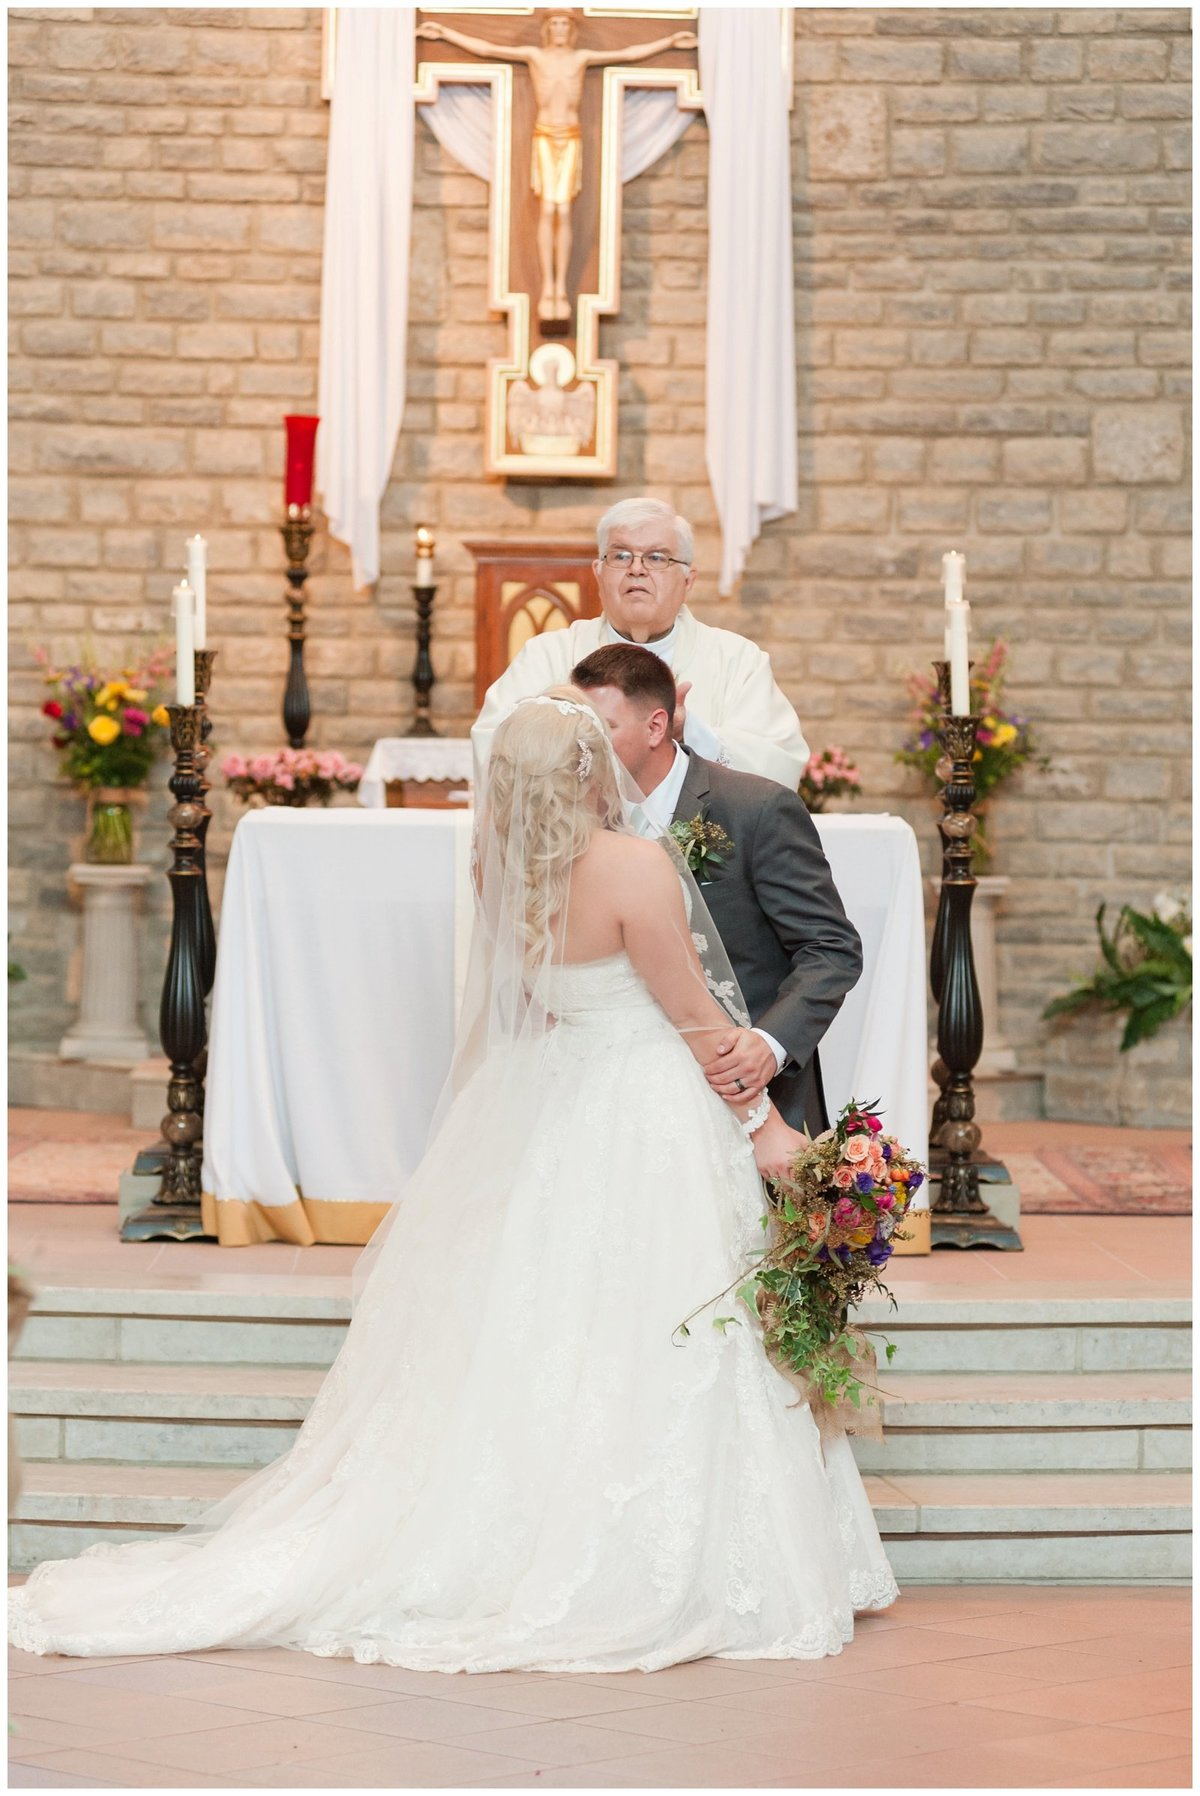 Heritage golf and country club wedding hilliard ohio wedding photos_0032